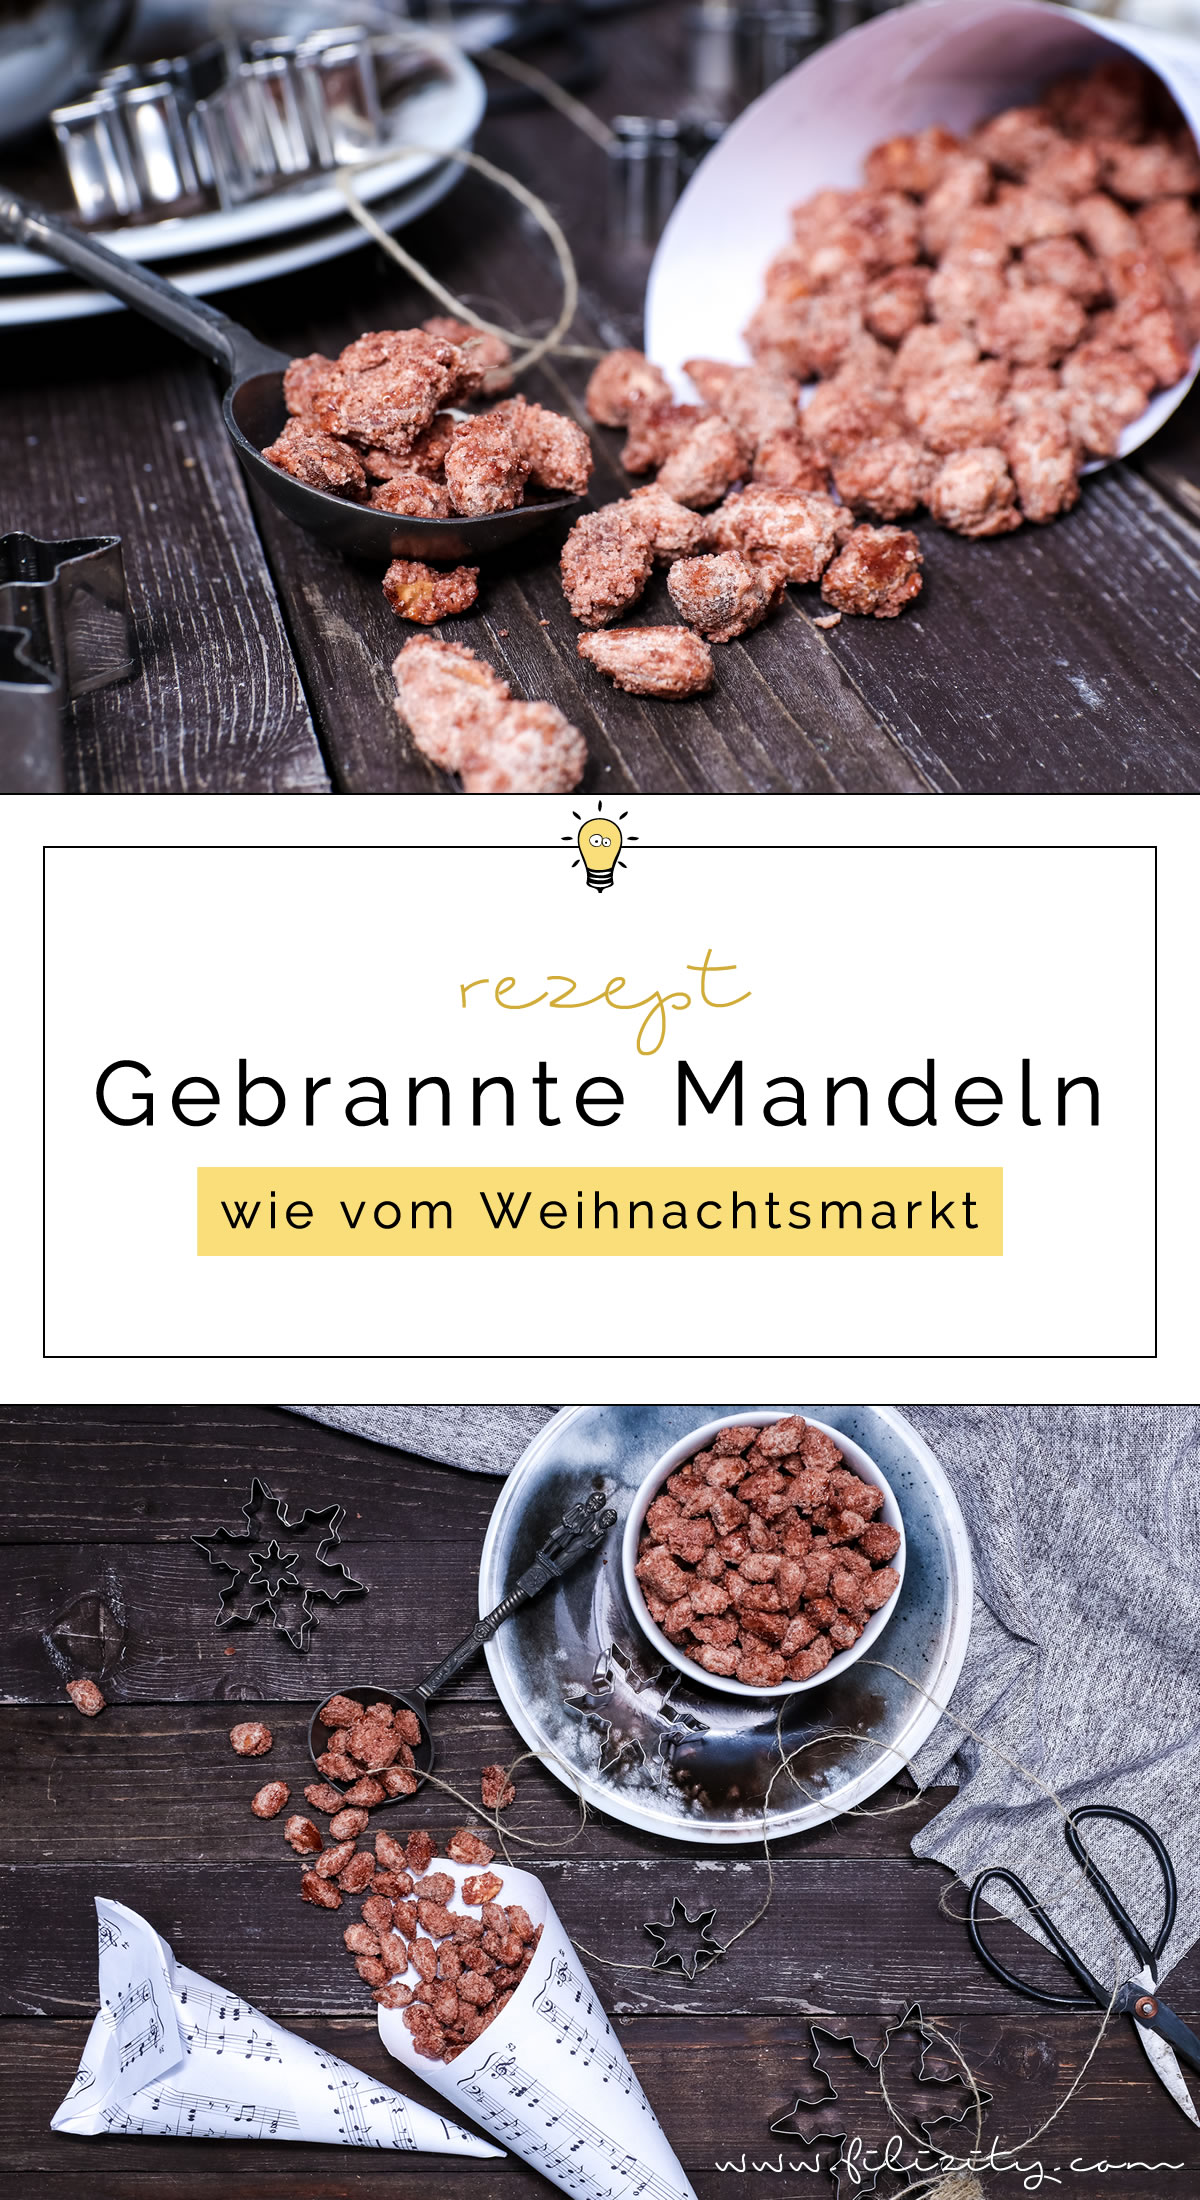 gebrannte mandeln wie vom weihnachtsmarkt food blog aus dem rheinland. Black Bedroom Furniture Sets. Home Design Ideas